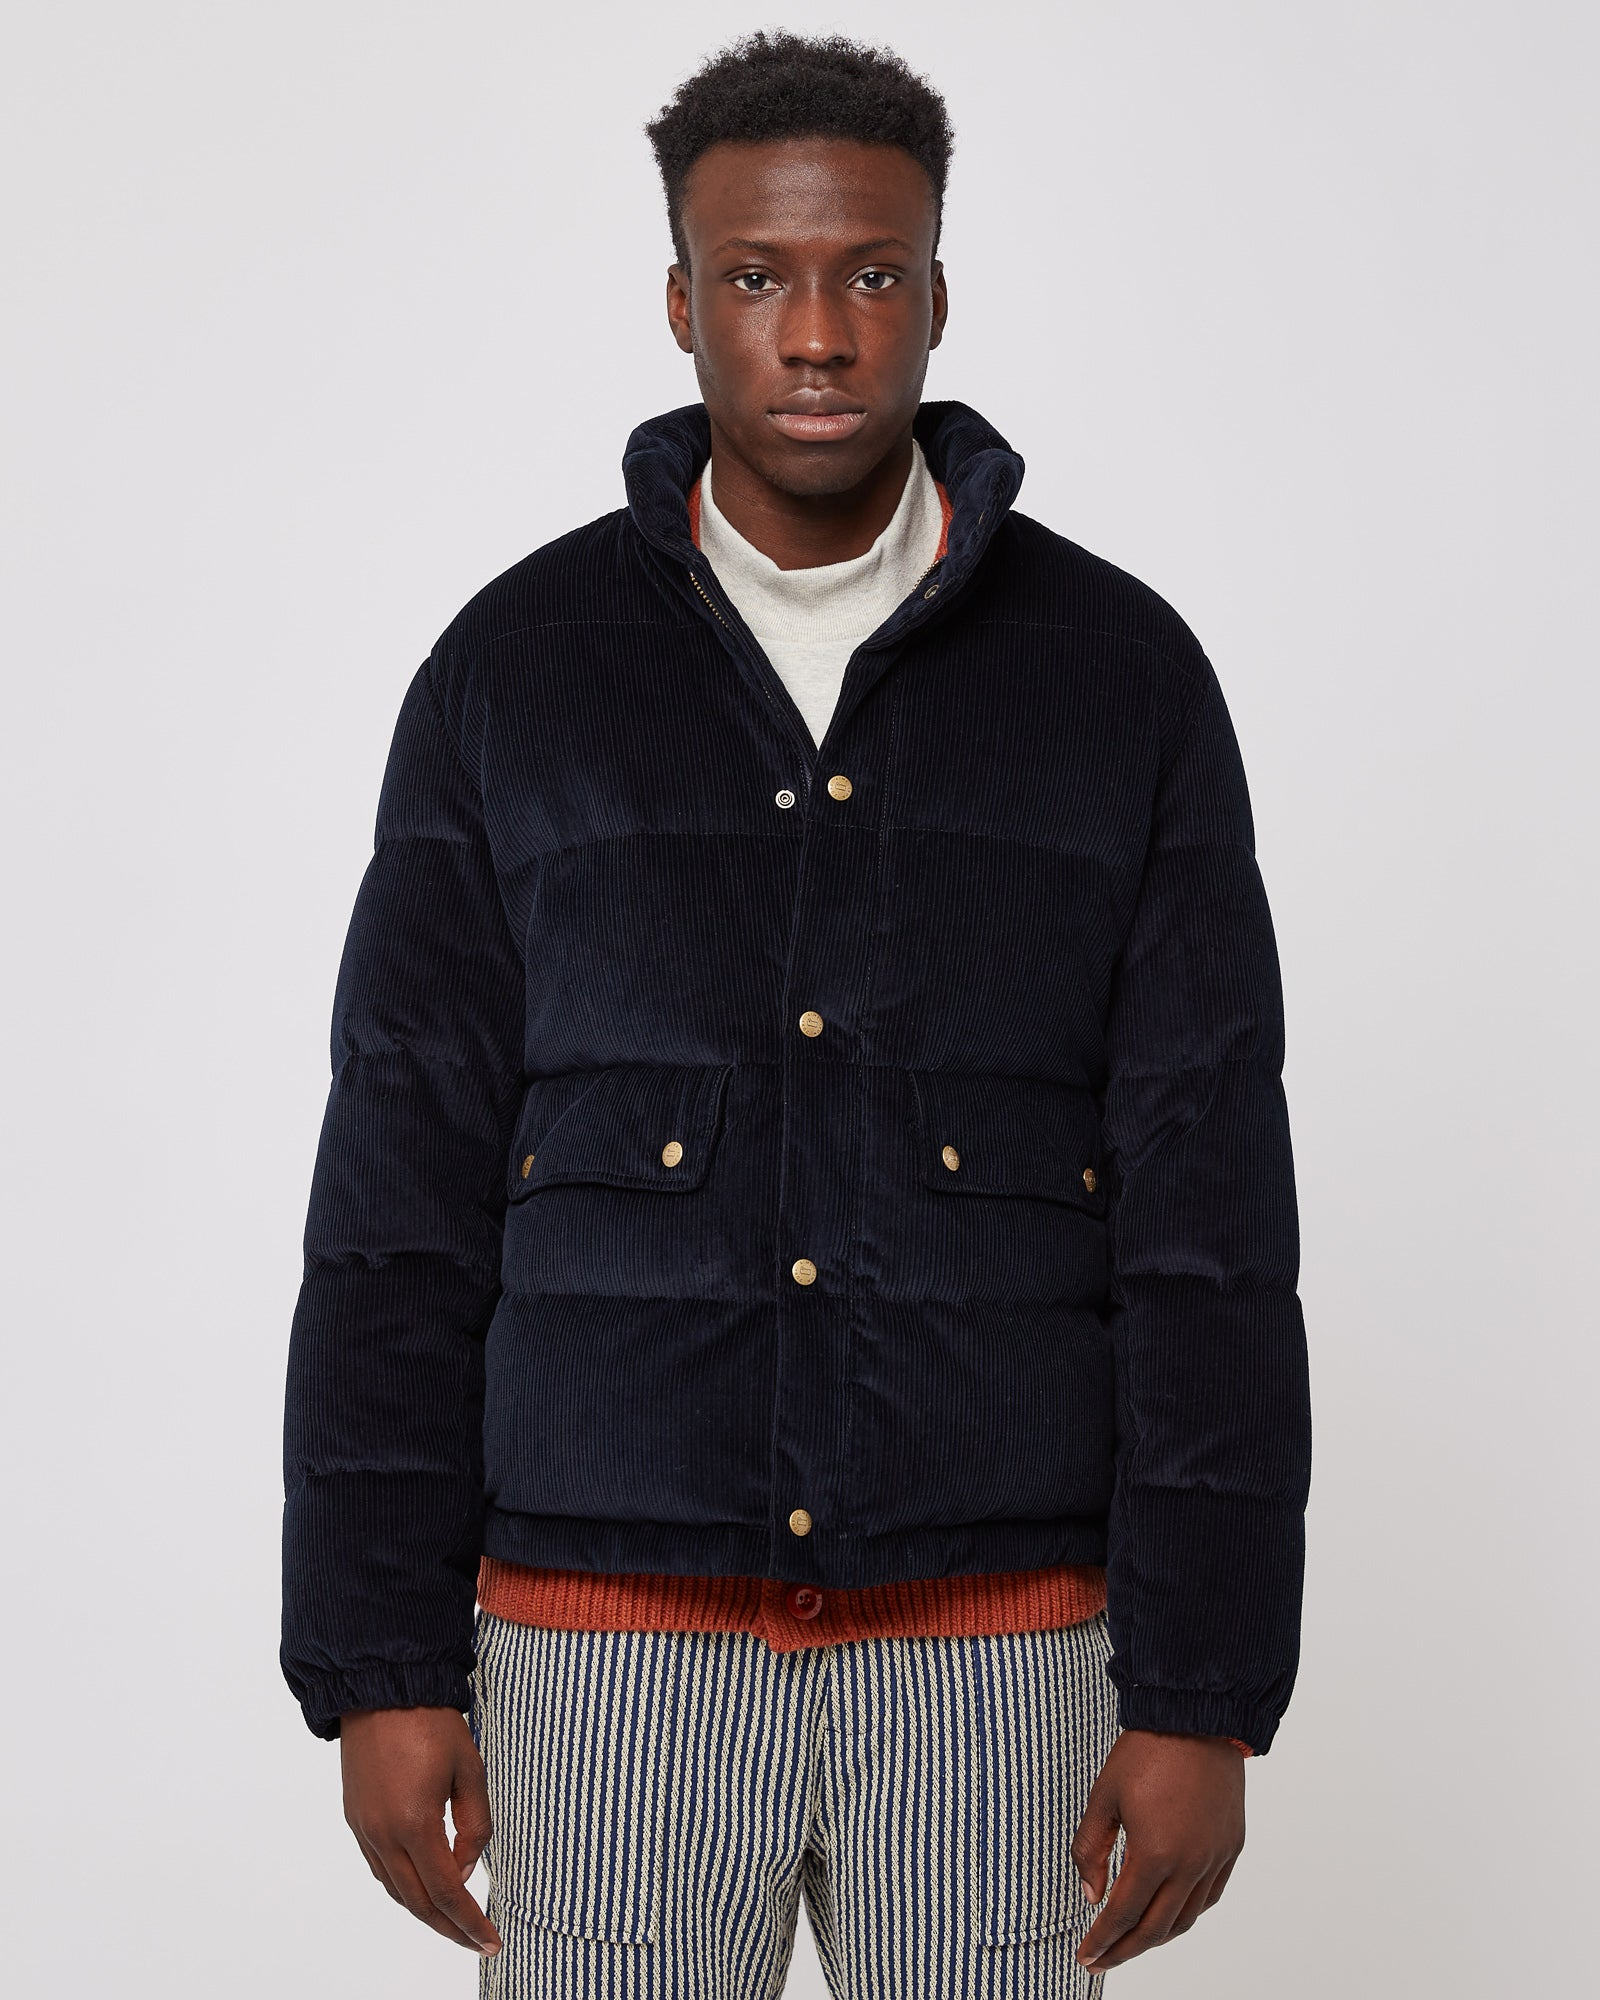 Woolrich Corduroy Puffer in Sky Captain